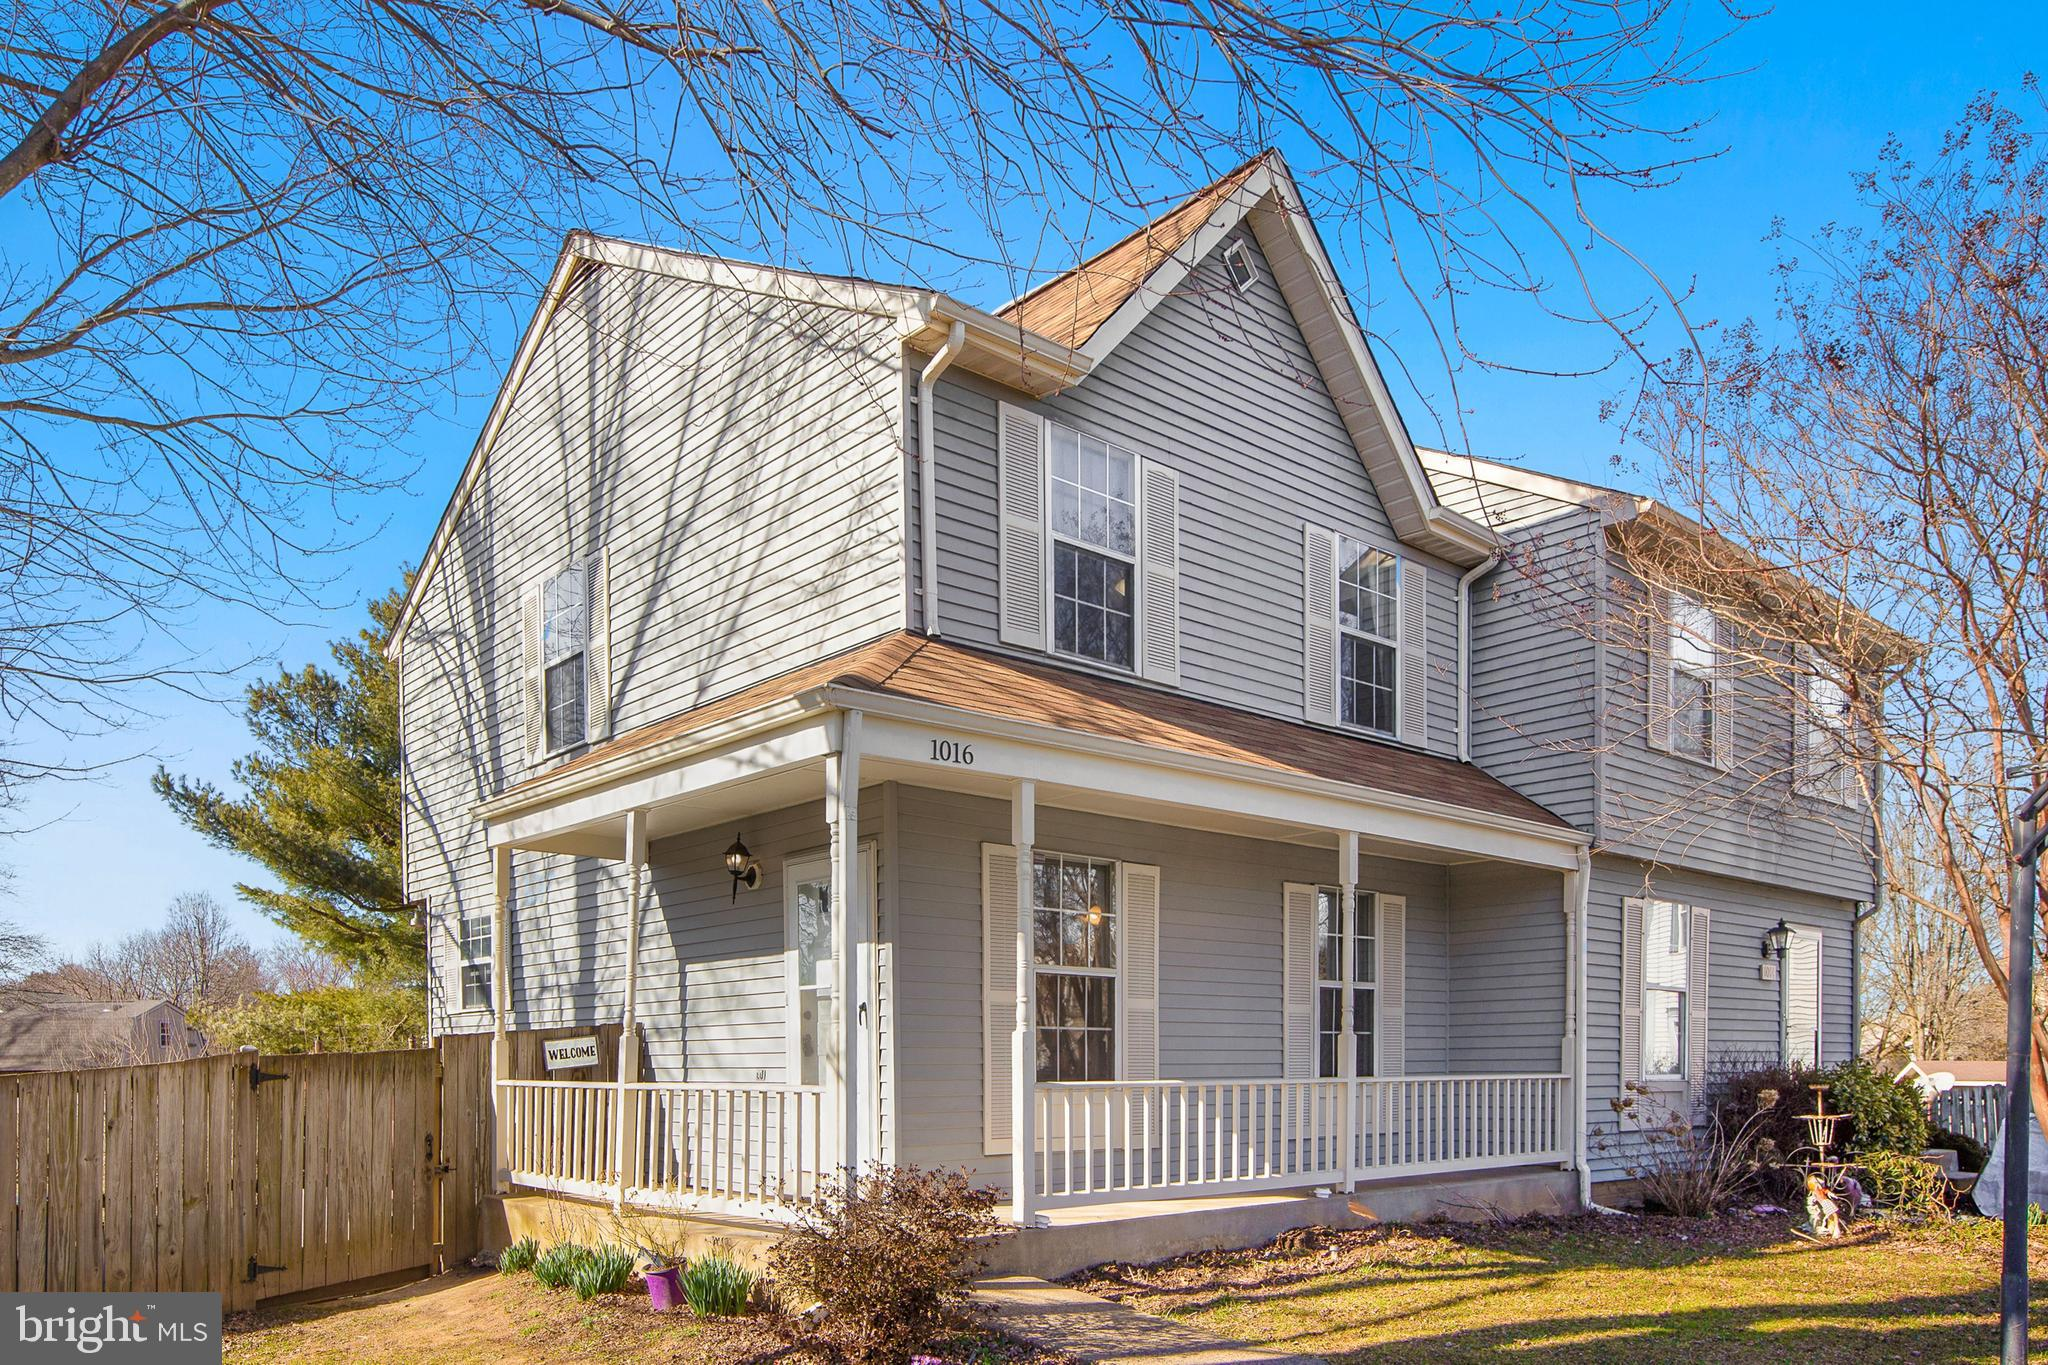 Wonderful 3-level end unit duplex situated on cul-de-sac lot. Lovely wraparound front porch greets y